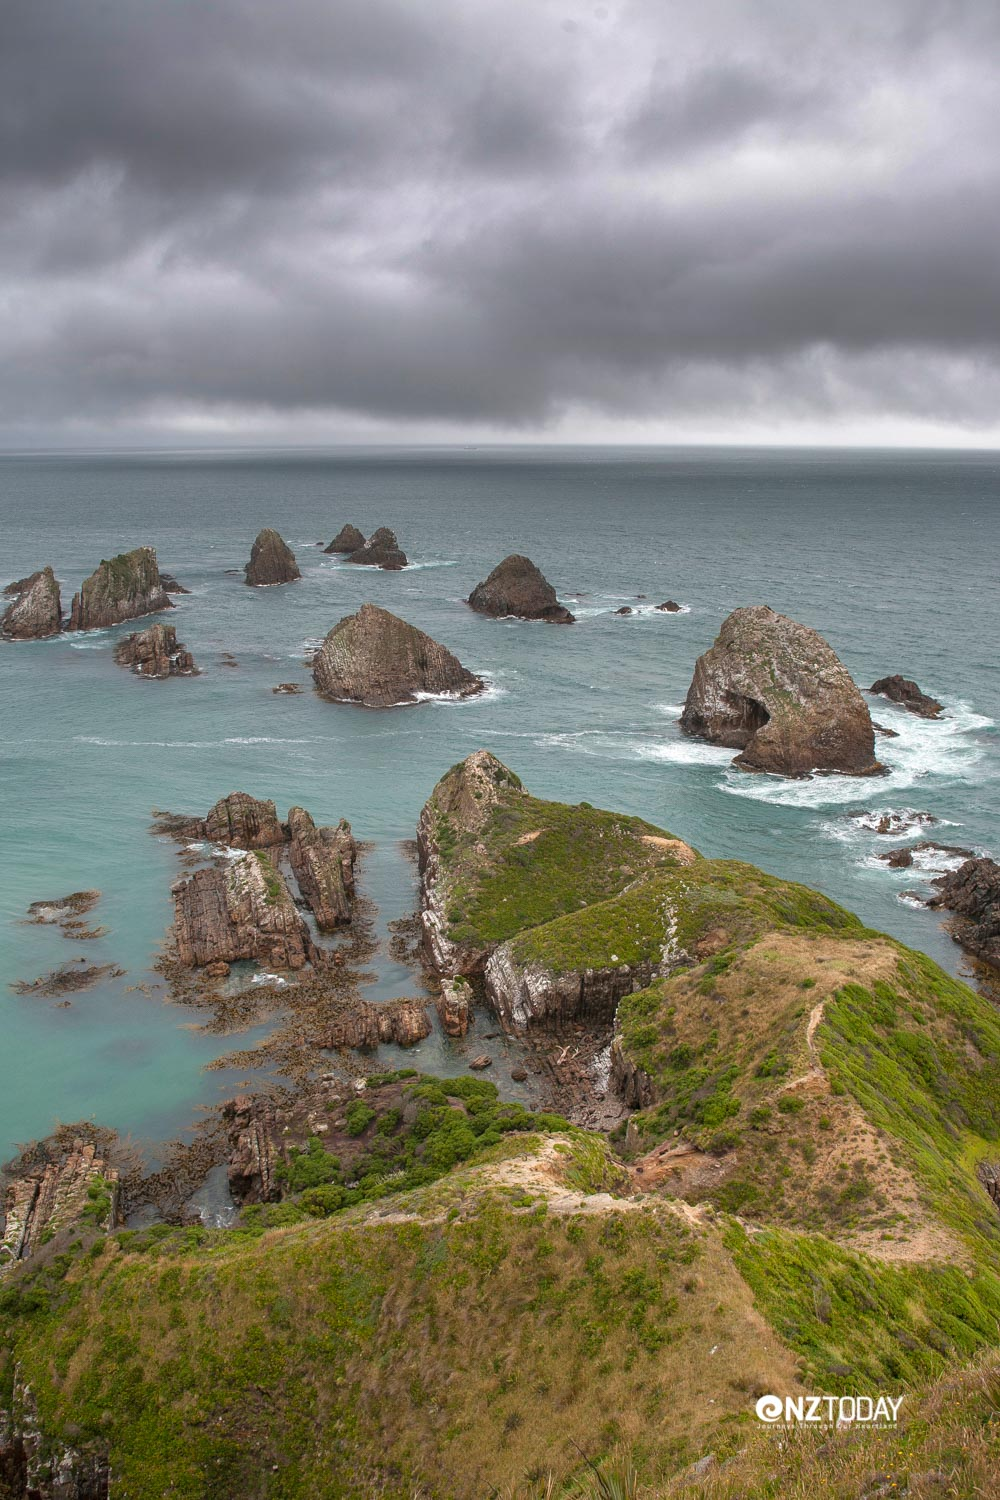 The wave-eroded rocks at Nugget Point are likened to the shape of gold nuggets